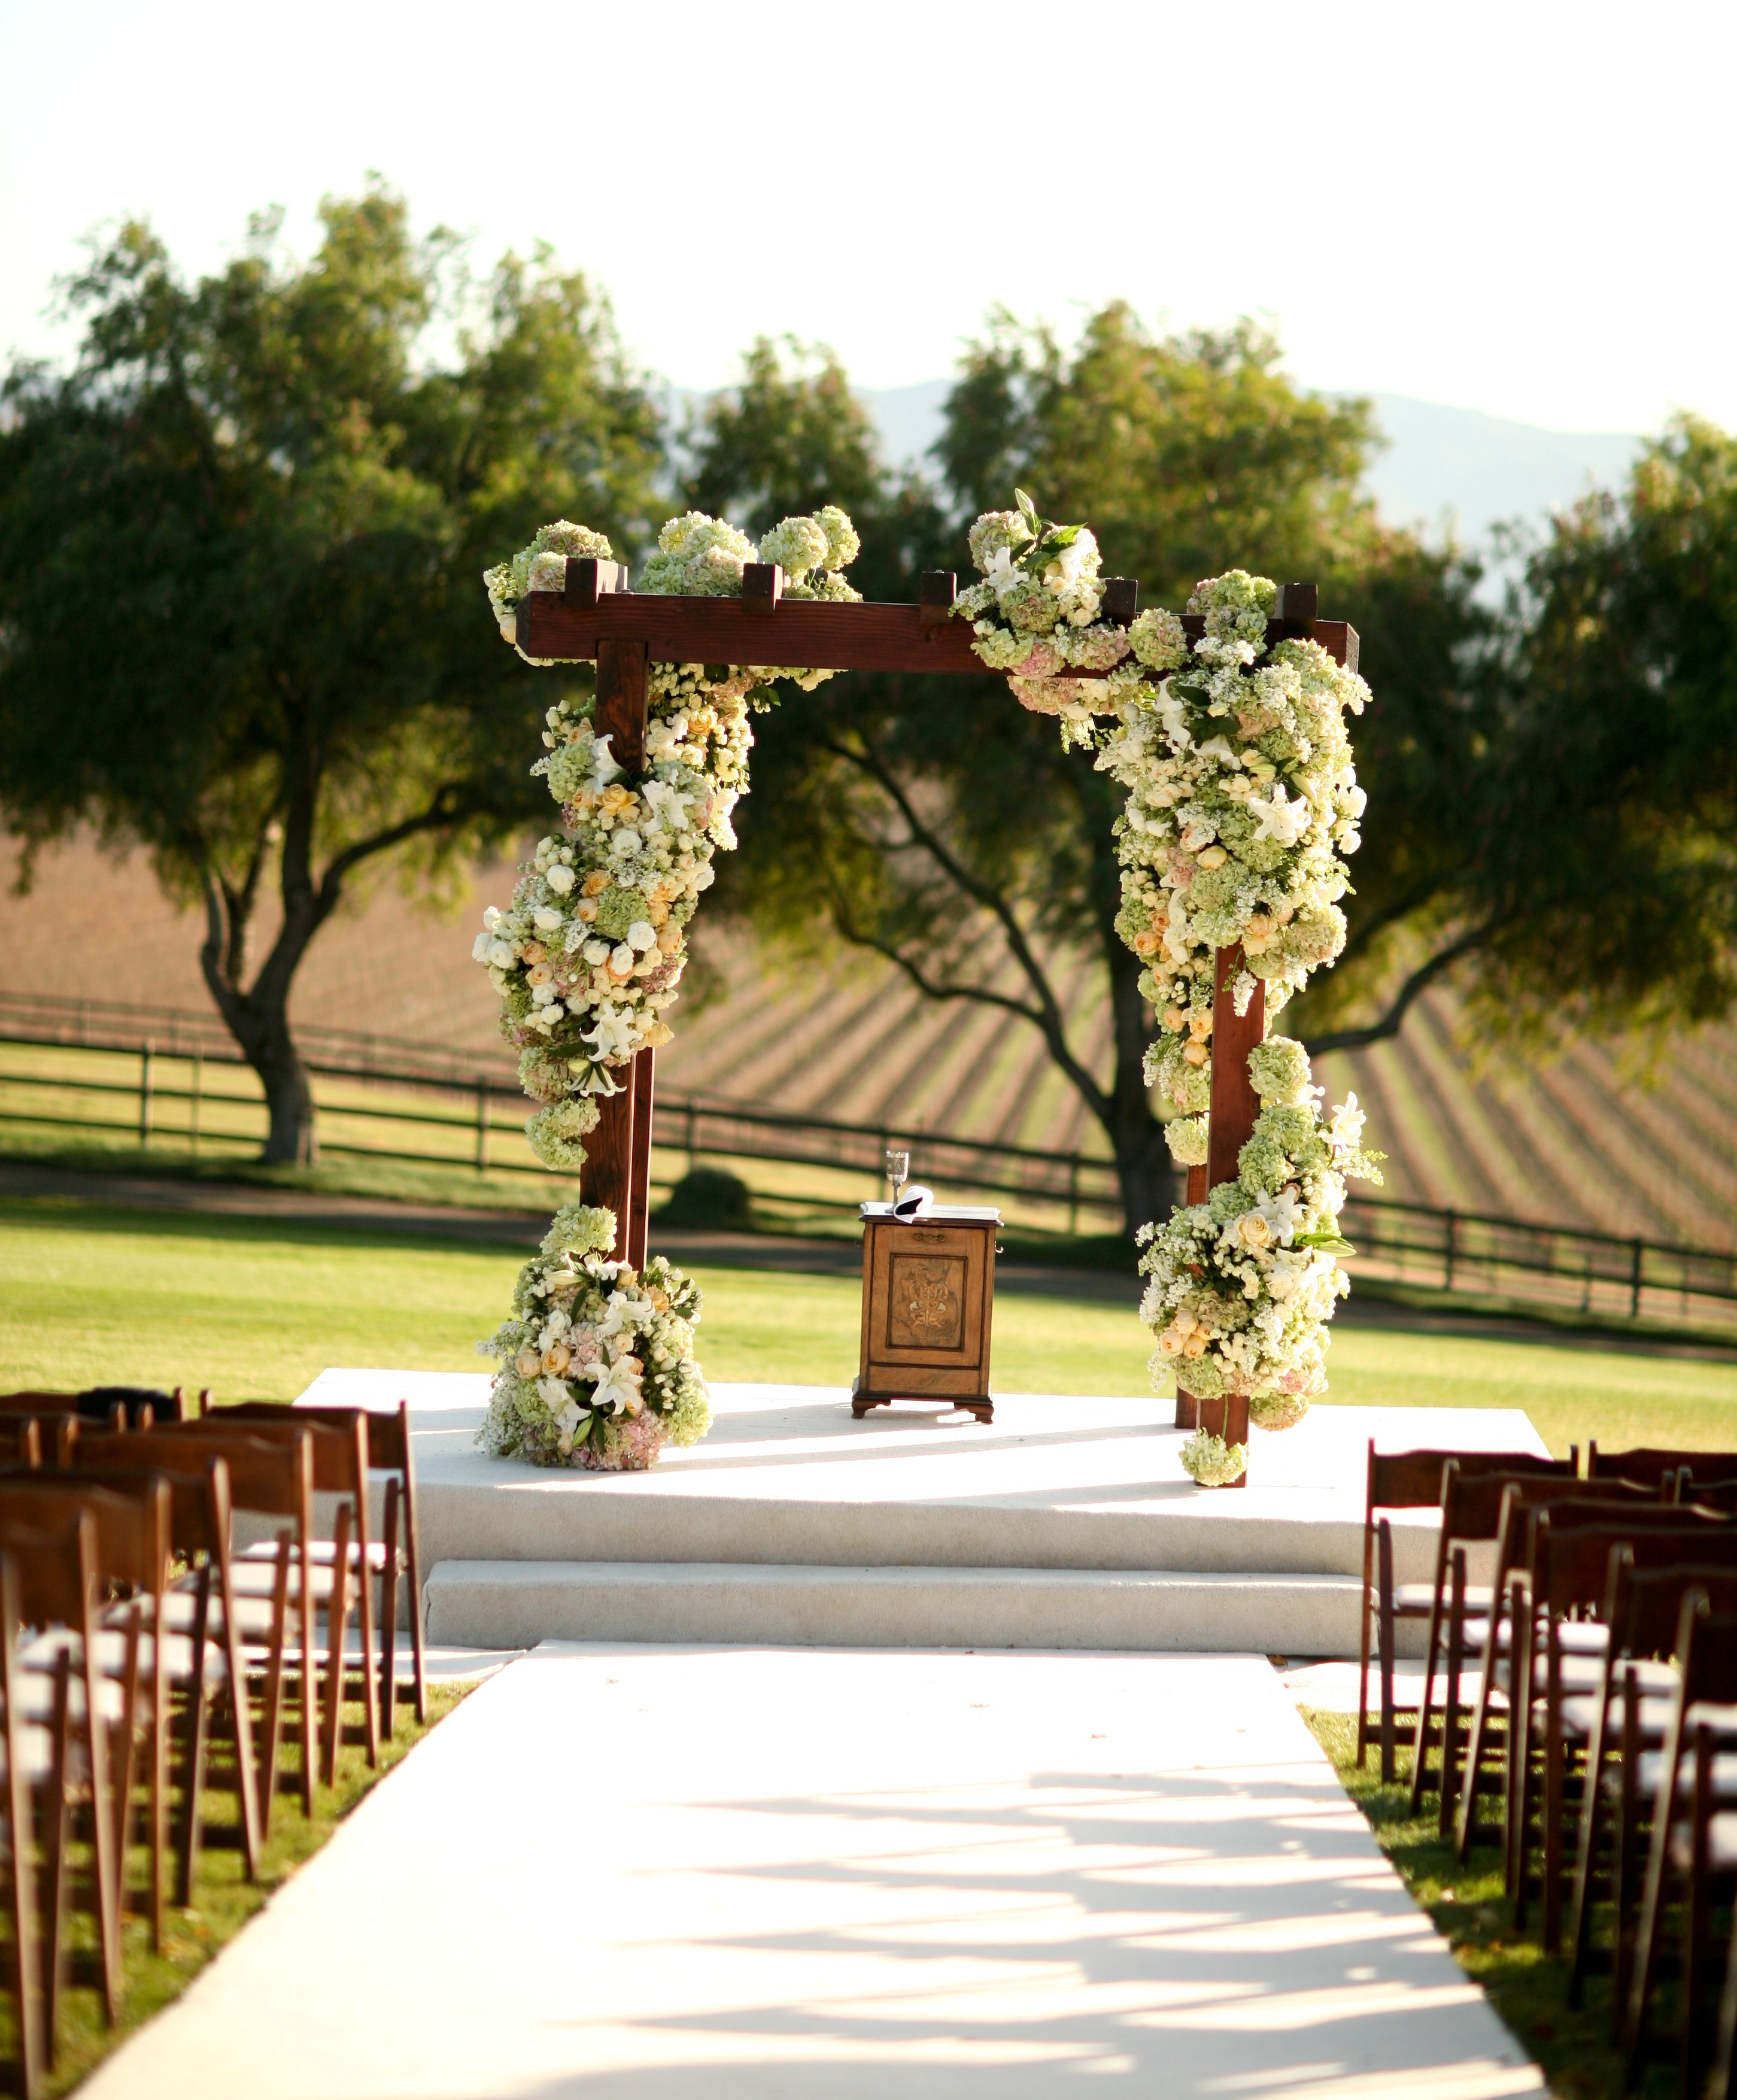 Wedding Altar Decorations Budget: Voluptuous Cascade Of White And Cream Flowers Twining